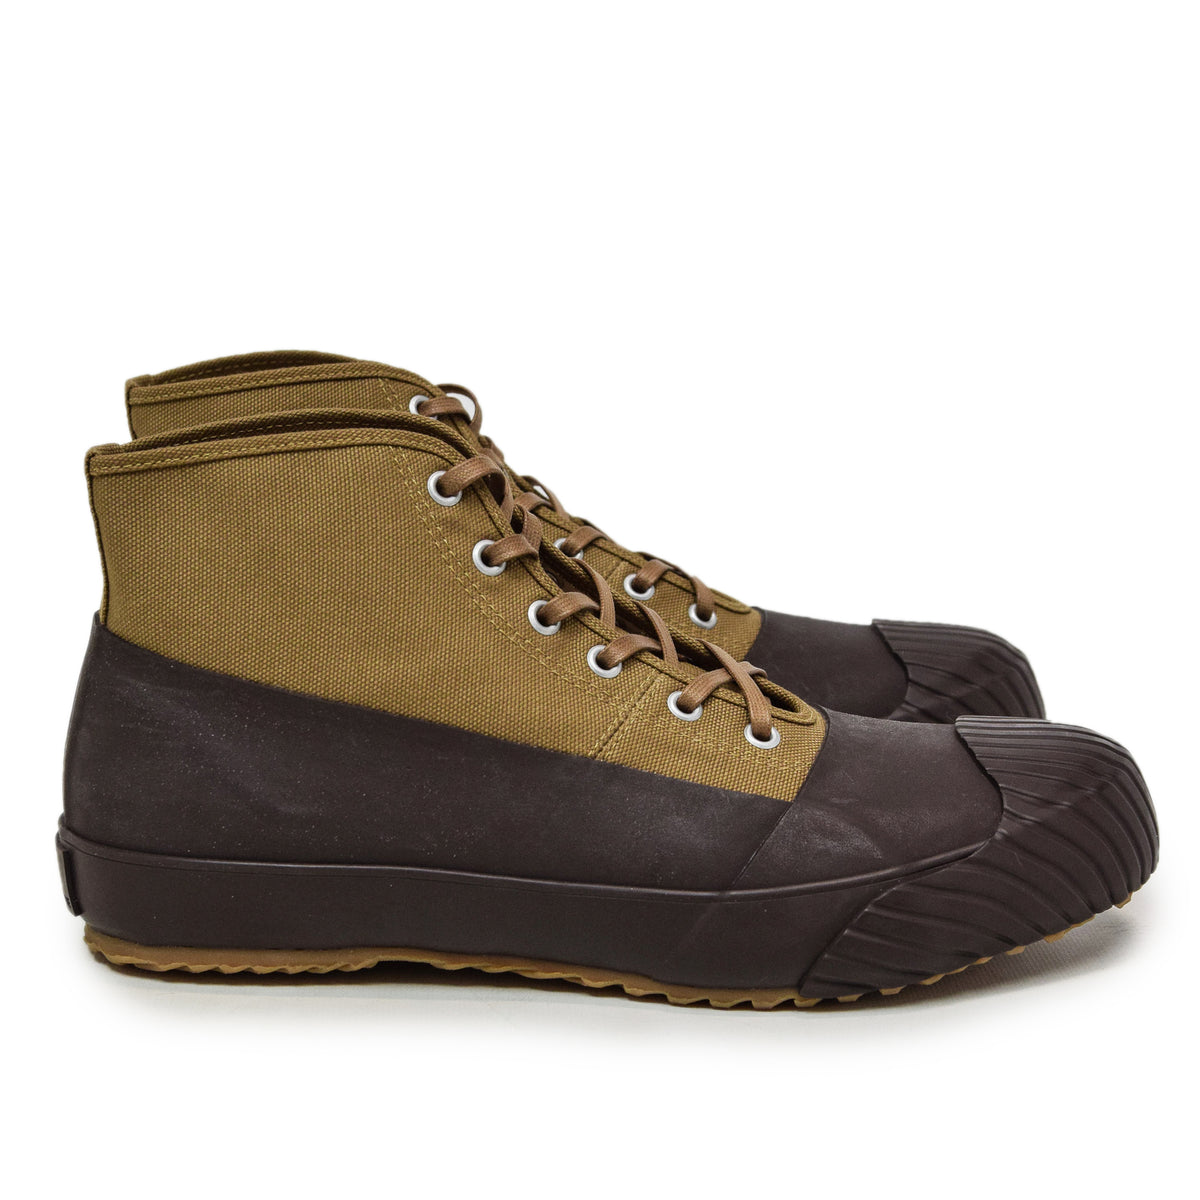 Moonstar Vulcanised Alweather Boot Brown Made In Japan side